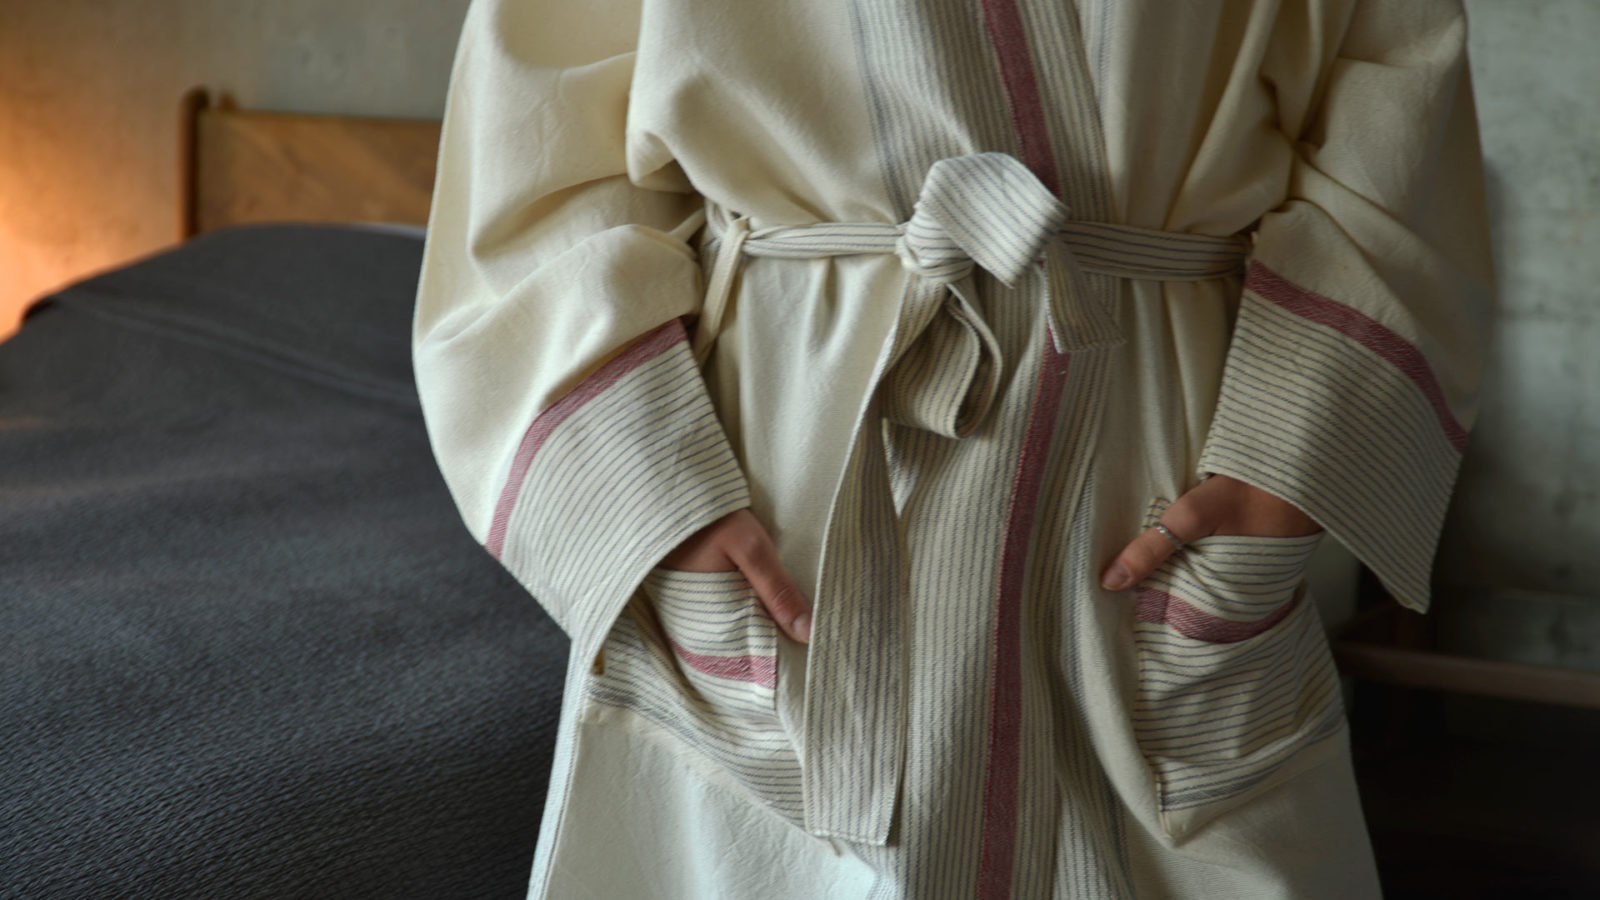 ivory soft cotton dressing gown with striped details a closer view